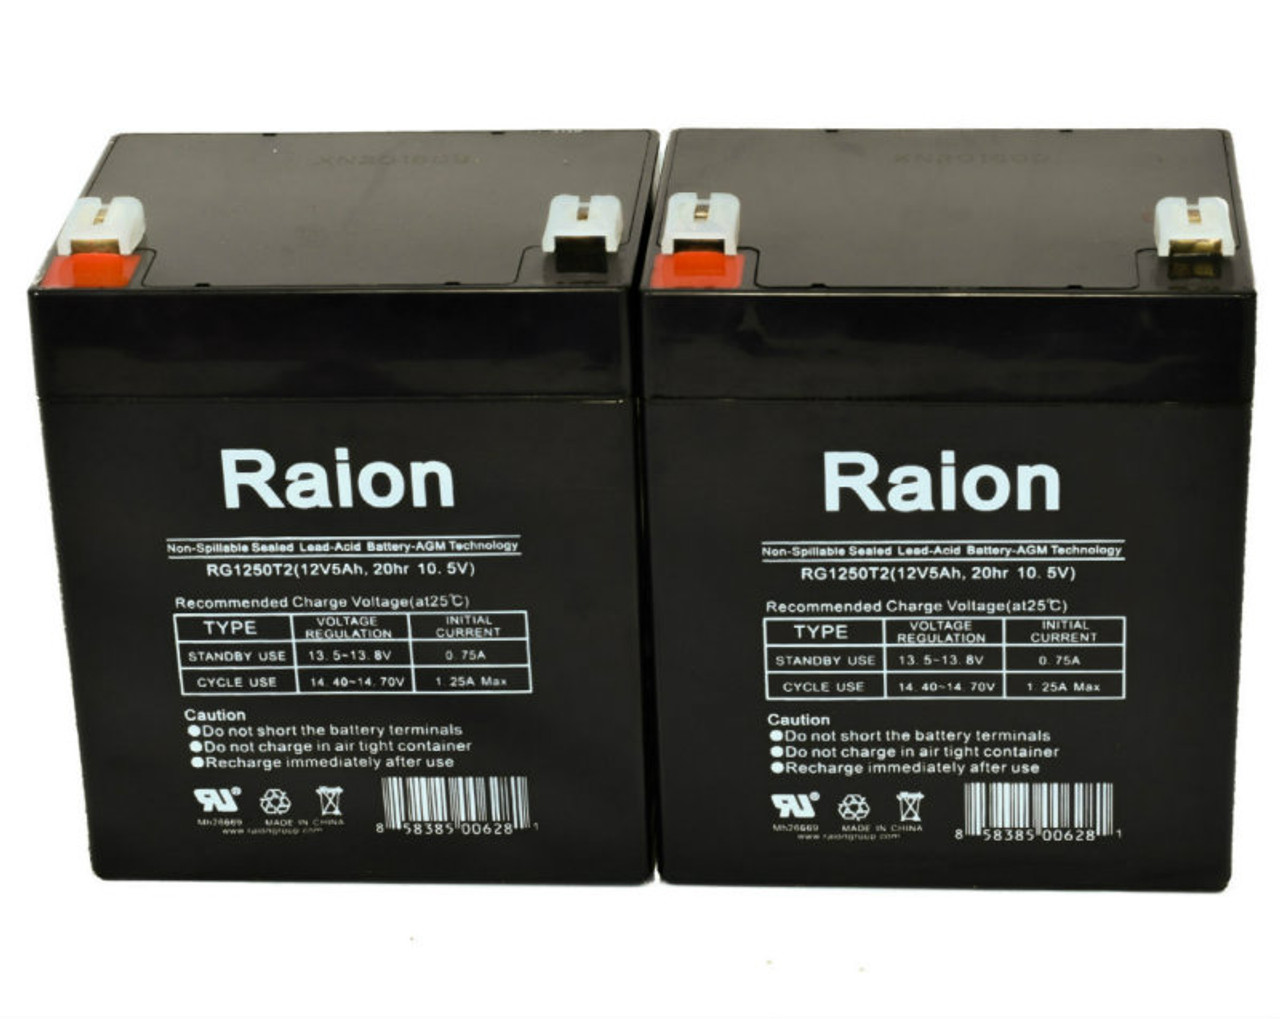 Raion Power RG1250T1 Replacement Battery for Sentry Battery PM1245 - (2 Pack)